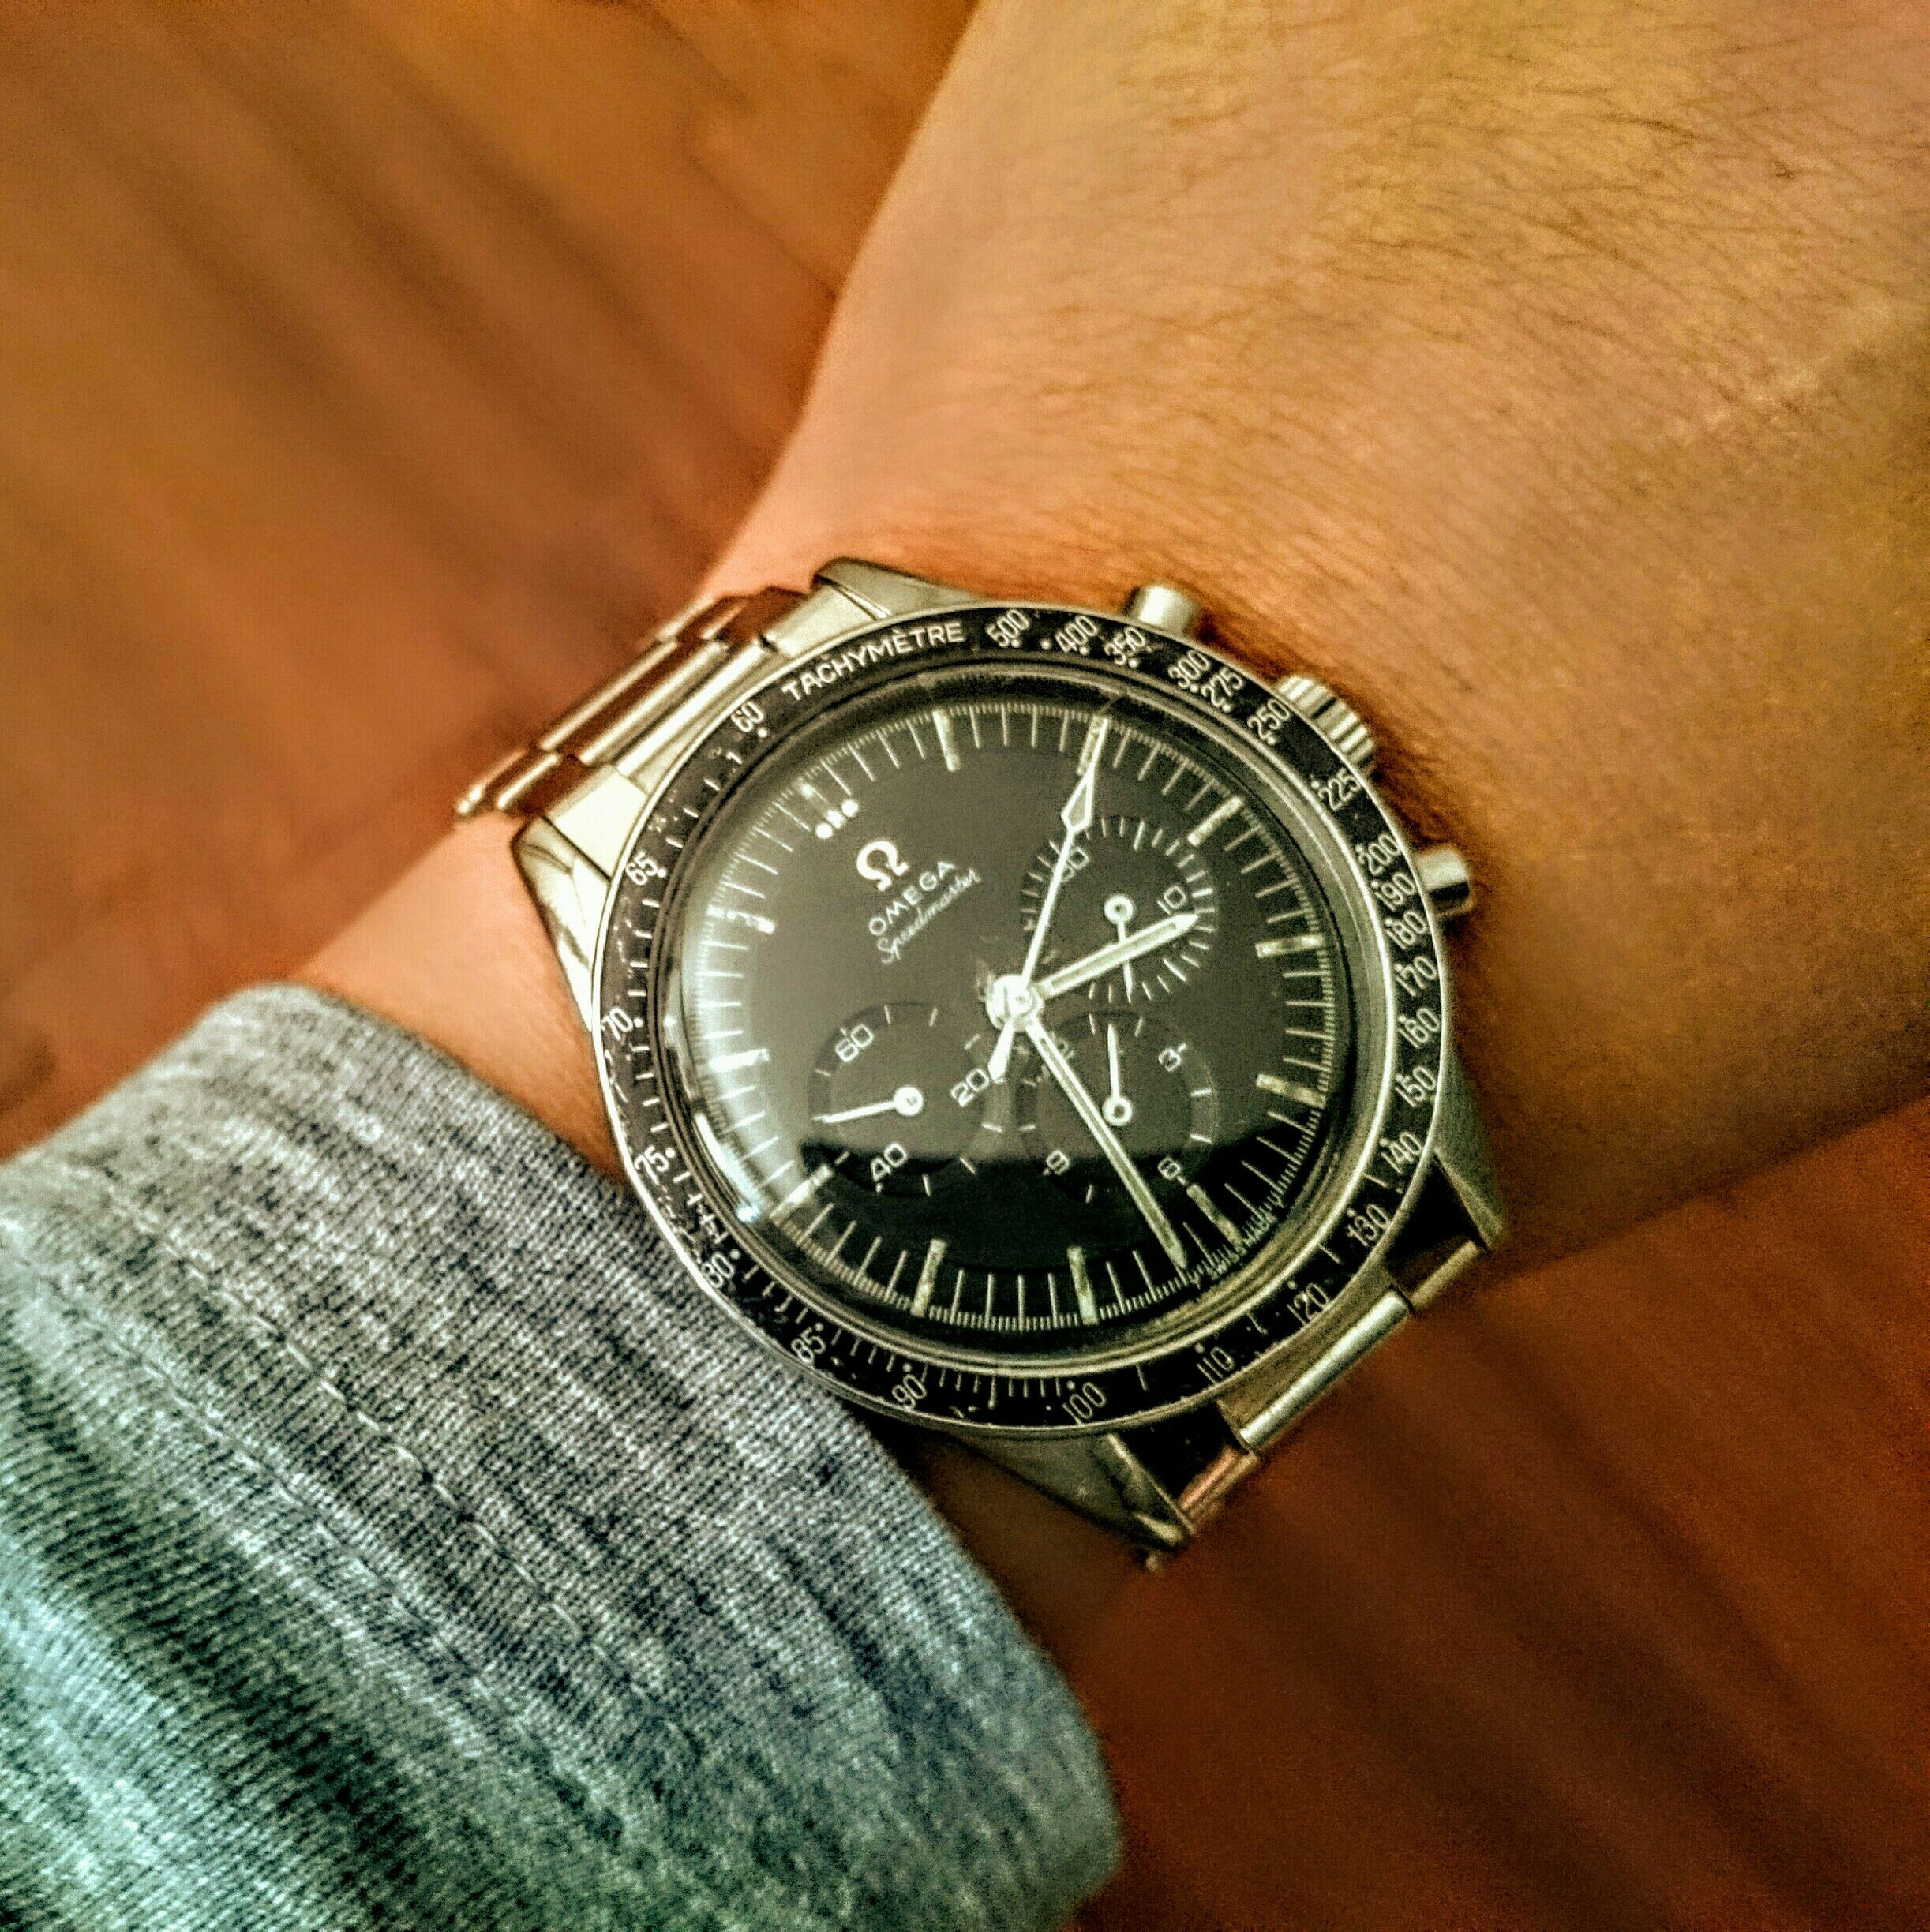 Giving Ed White some wrist time #vintage #omega #speedmaster #moonwatch #chronograph www.watchvaultnyc.com #watchforsale #watchporn